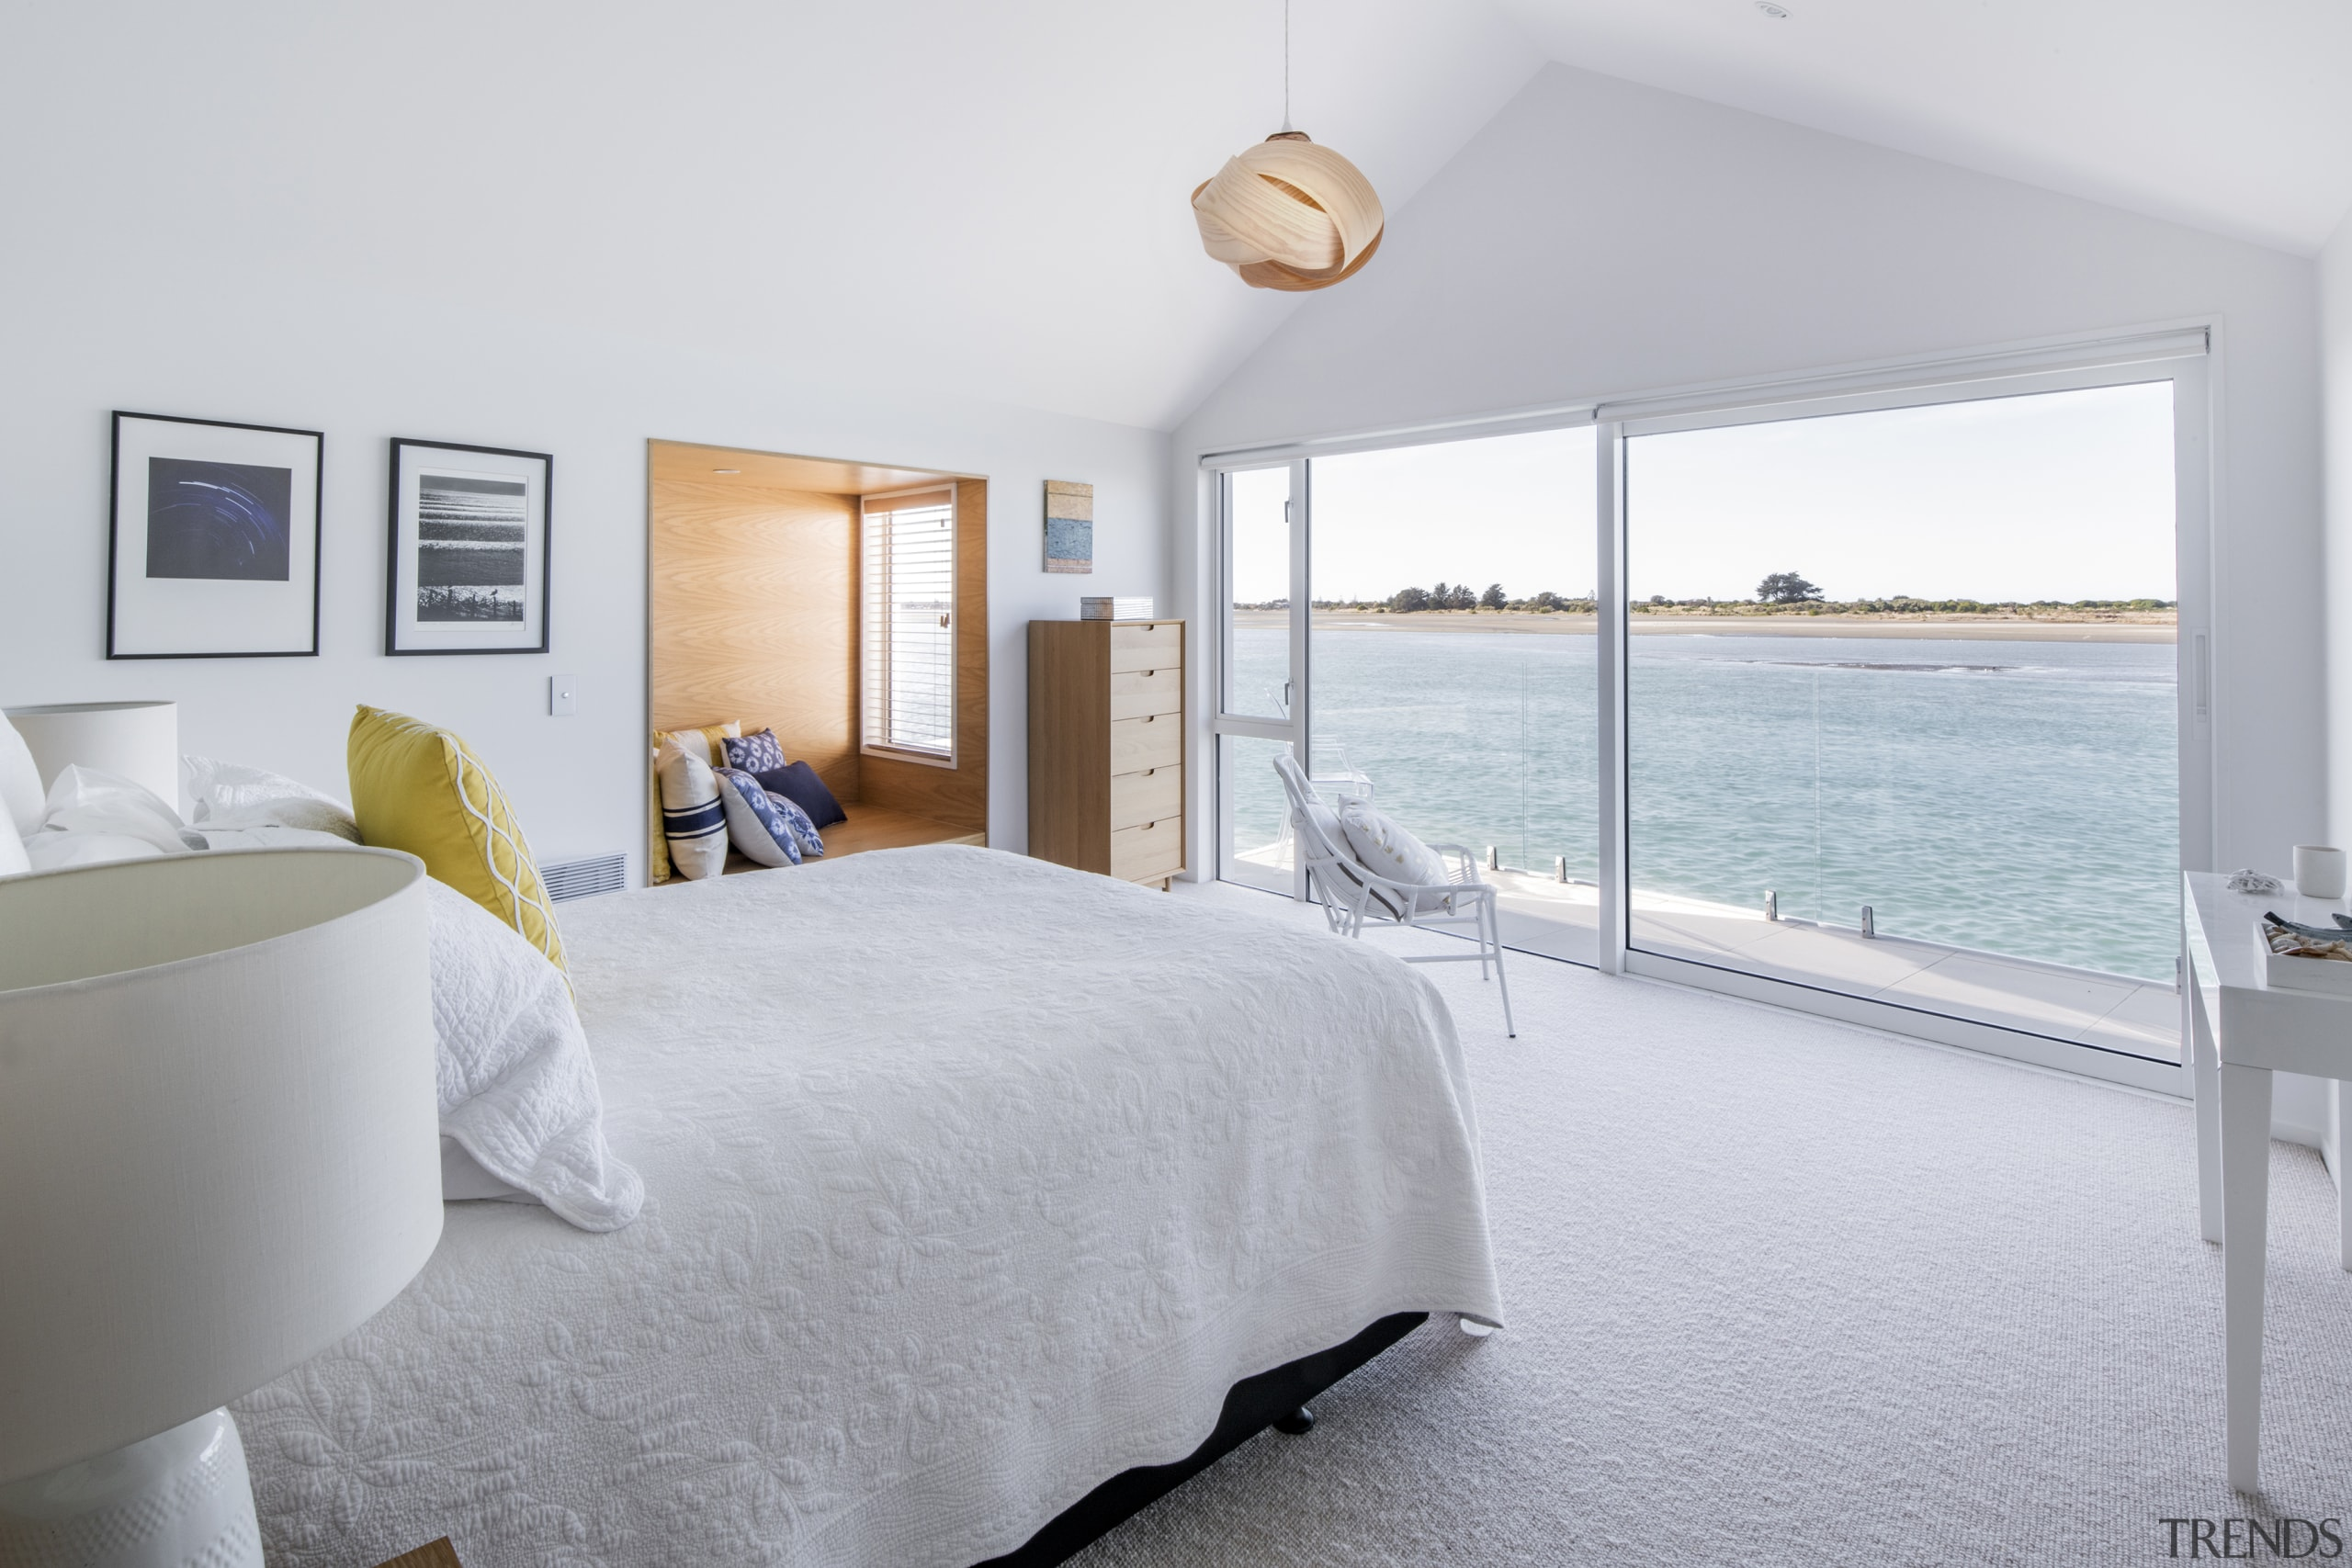 The master bedroom opens to its own deck